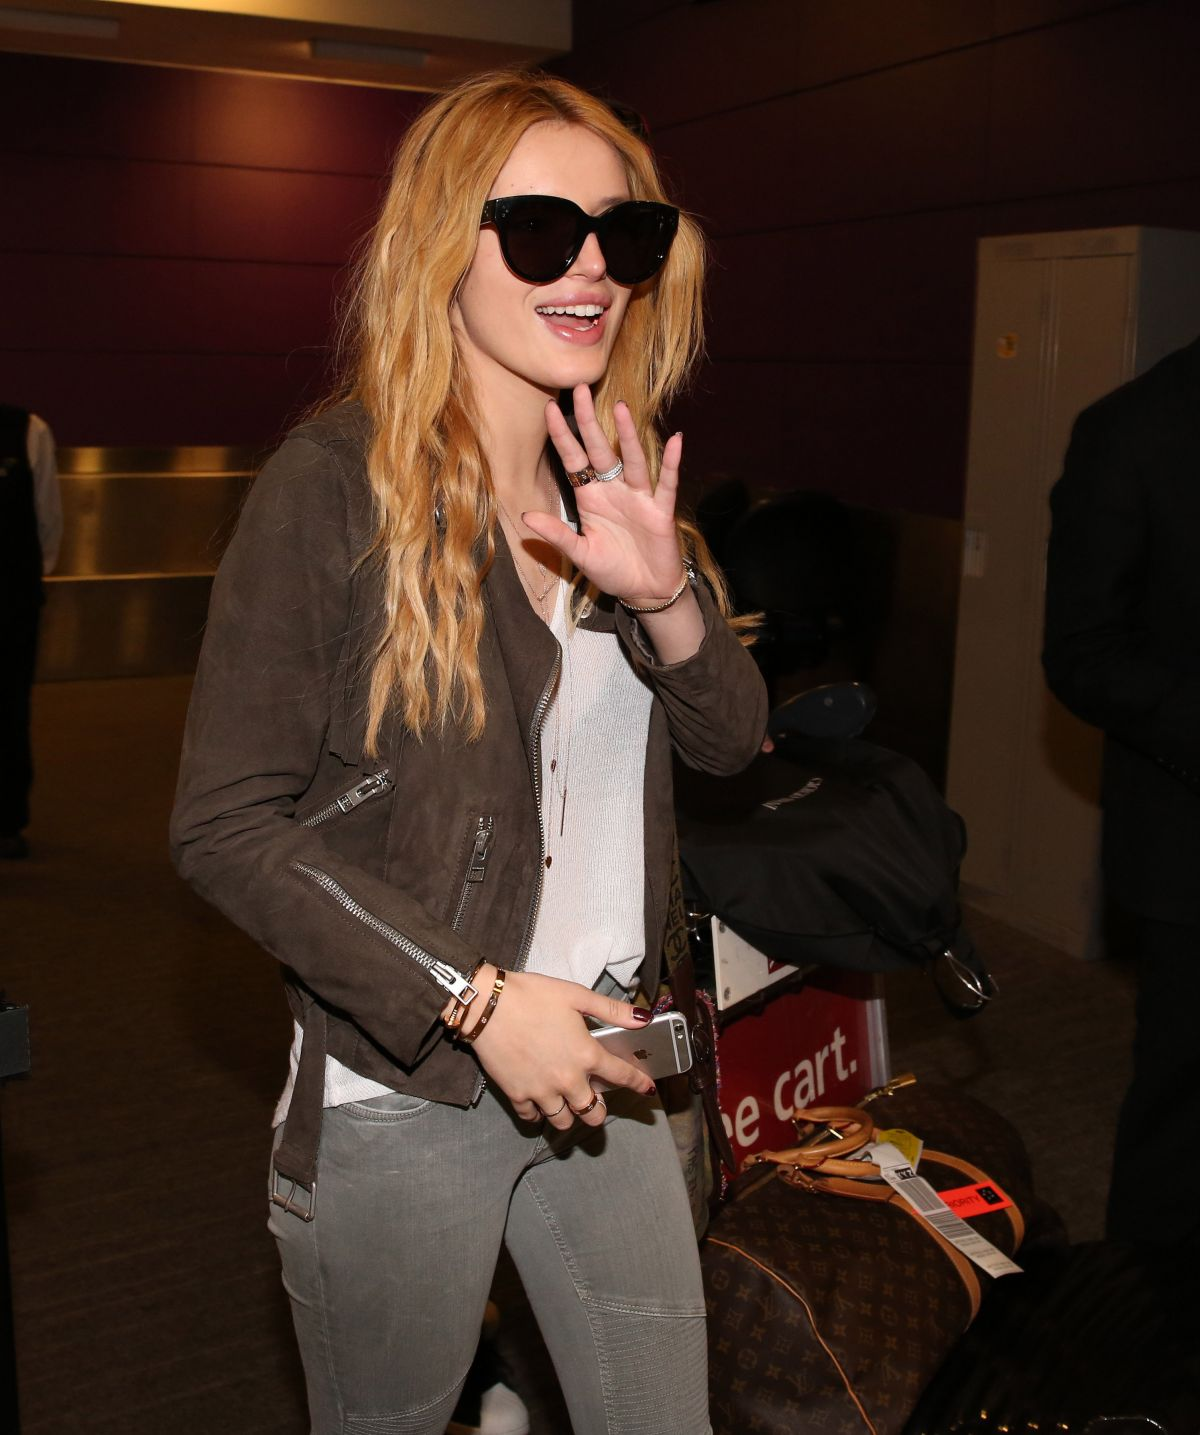 BELLA THORNE at Pearson Airport in Toronto 06/20/2015